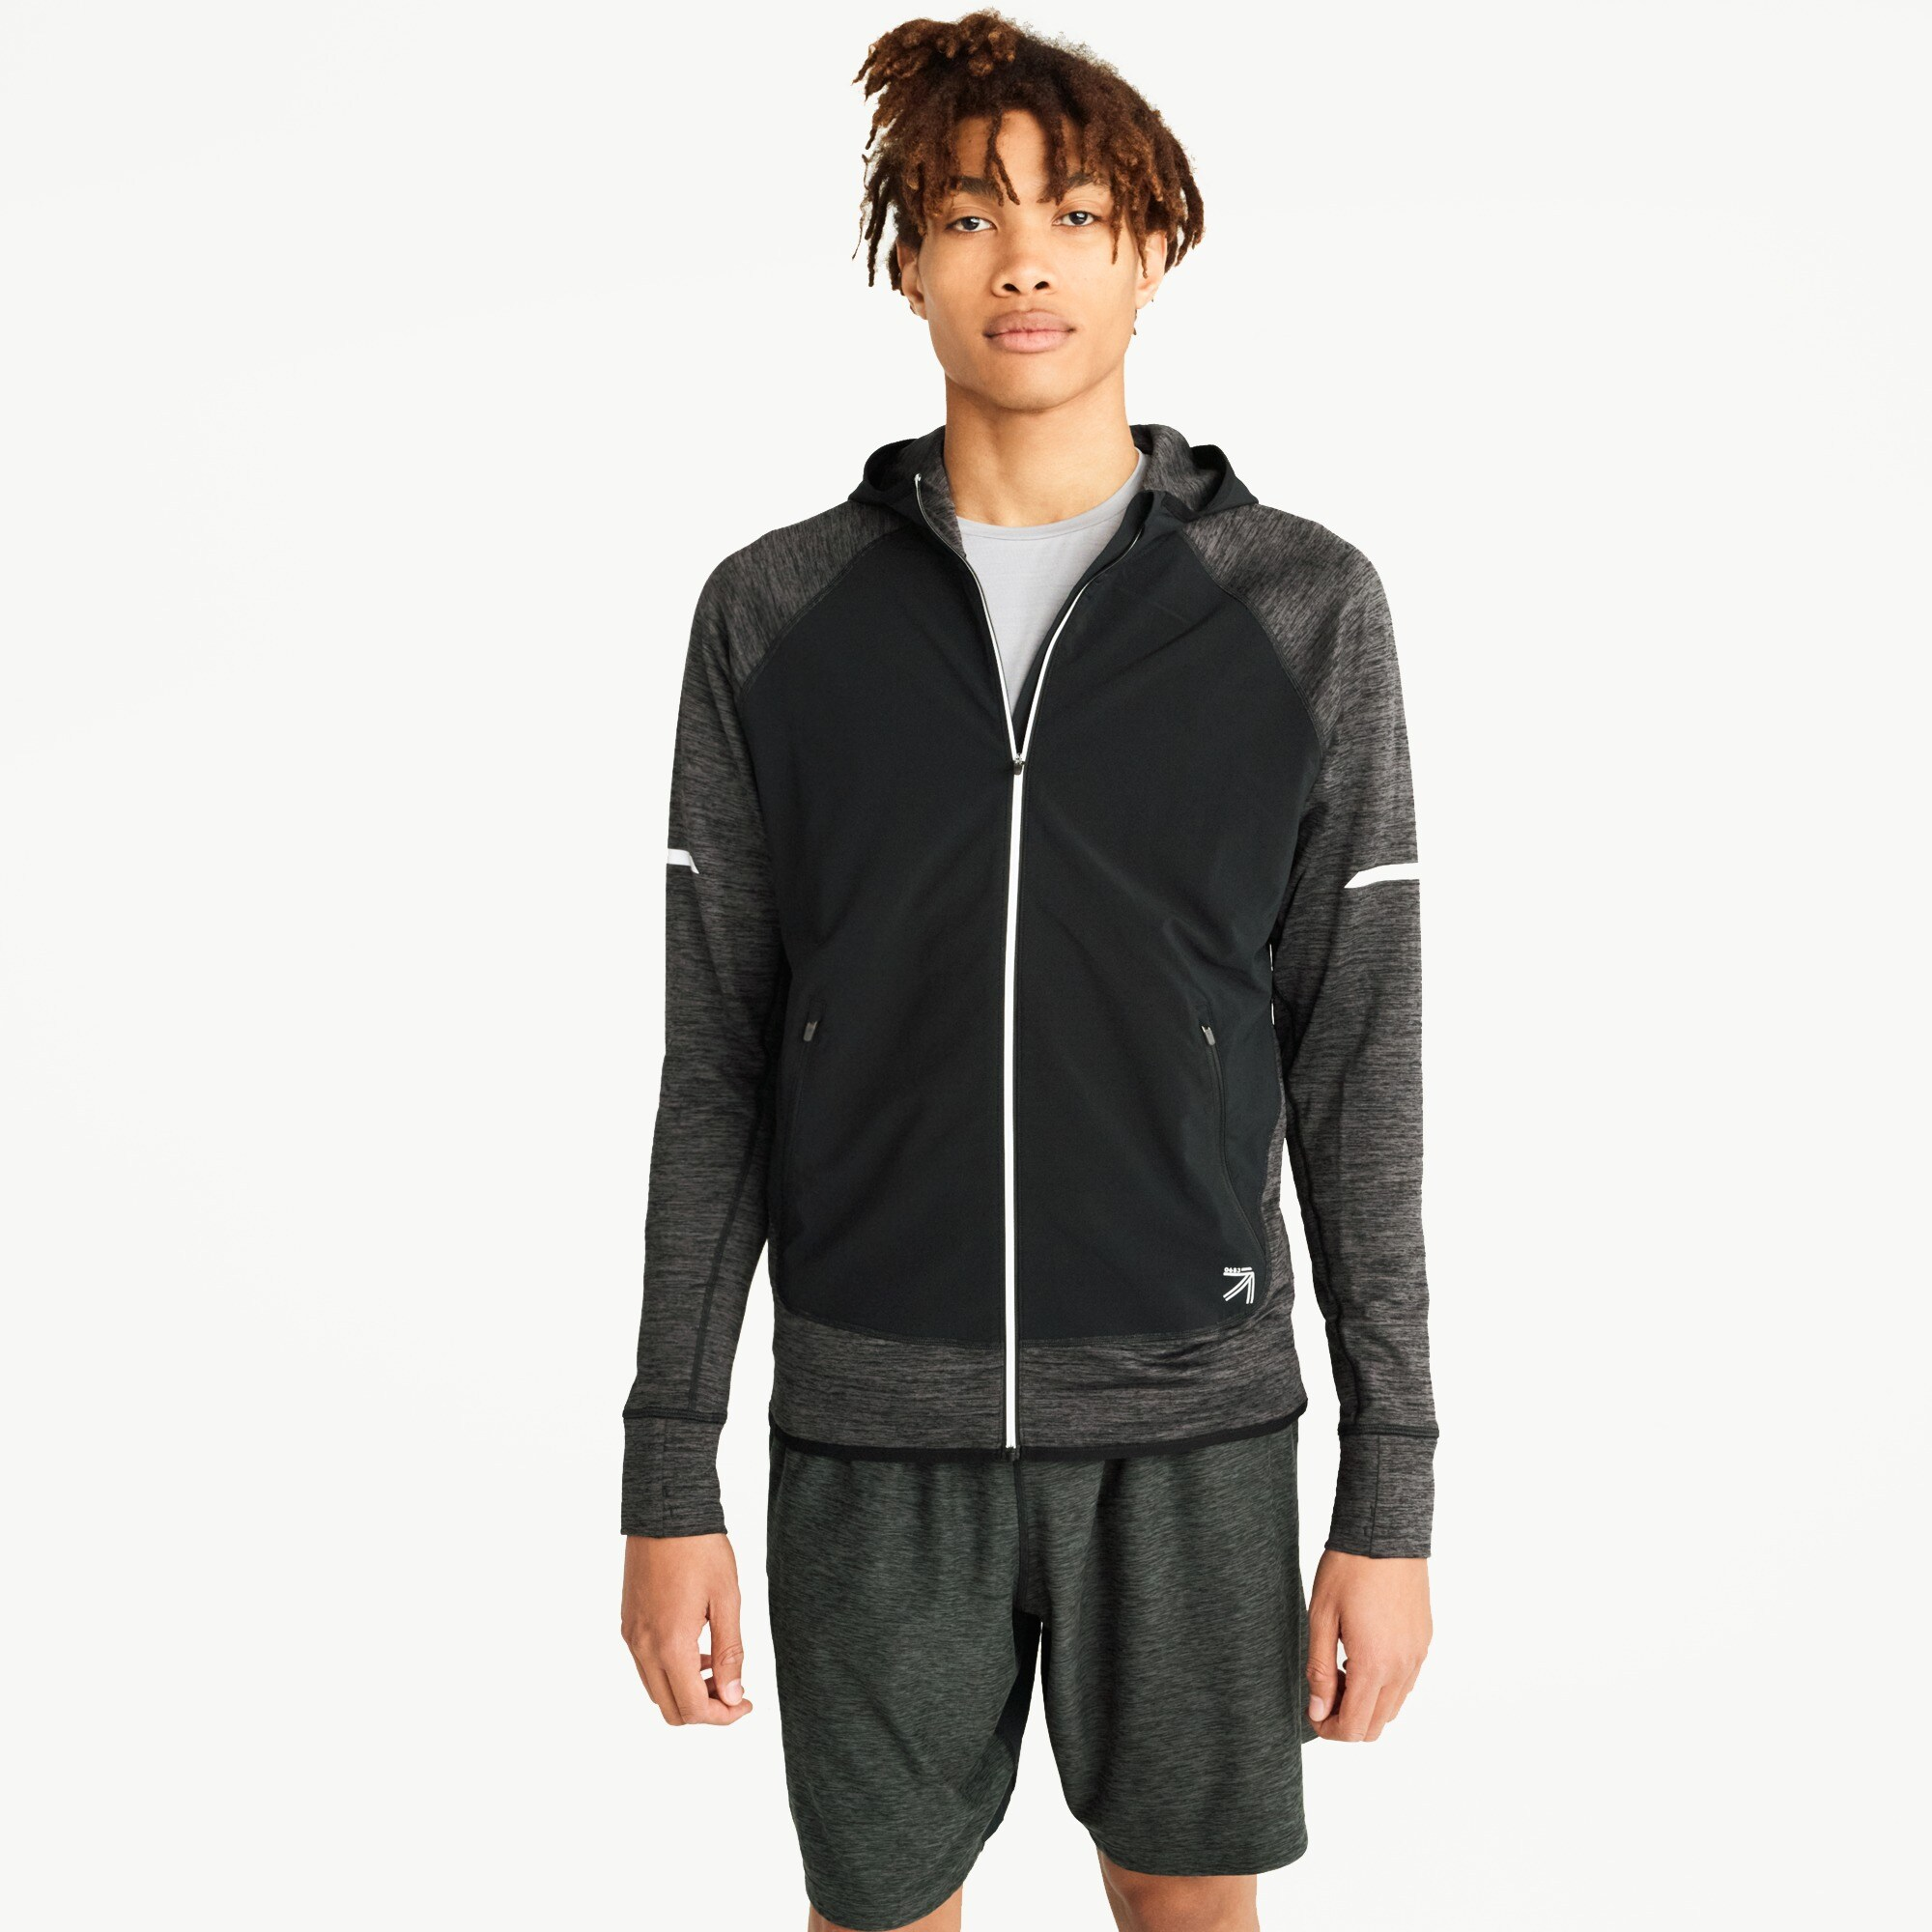 New Balance® for J.Crew heat run jacket